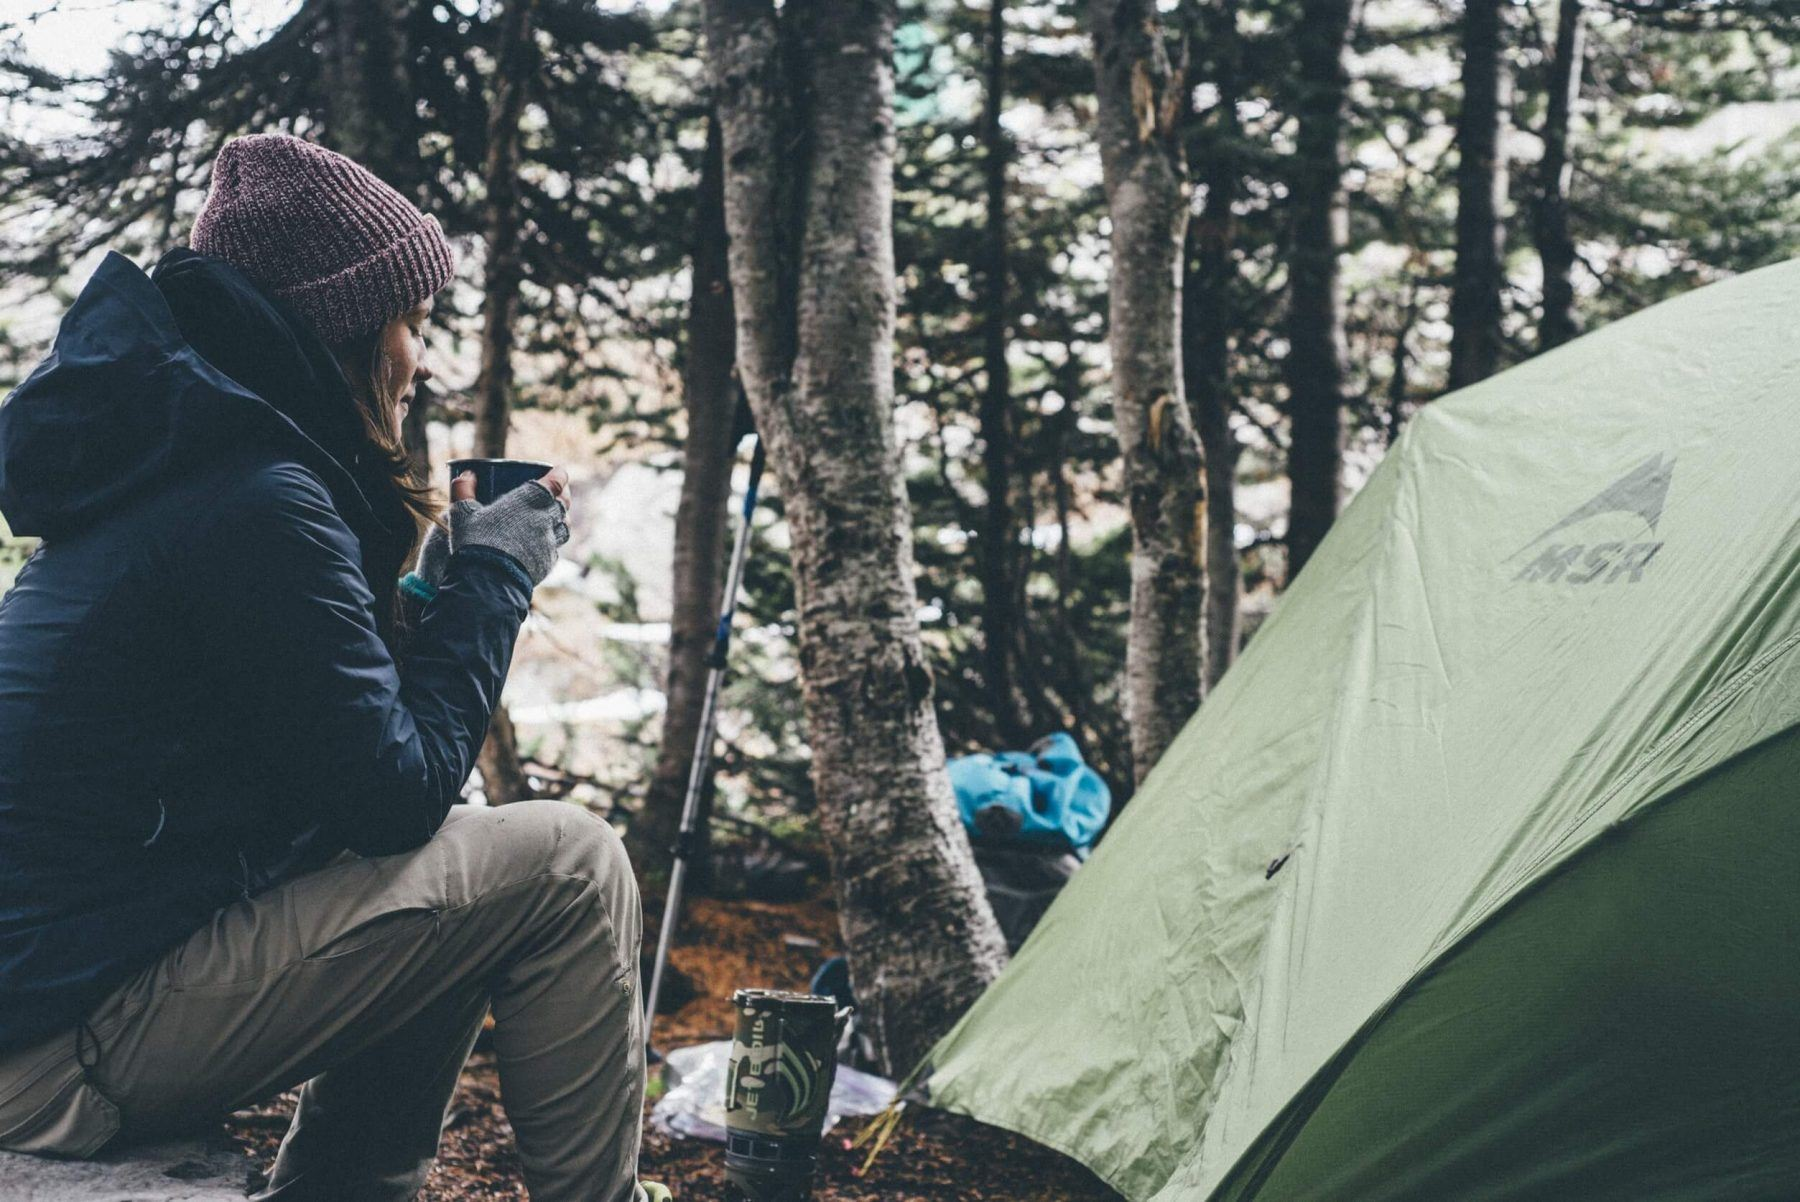 How to Prepare for camping alone